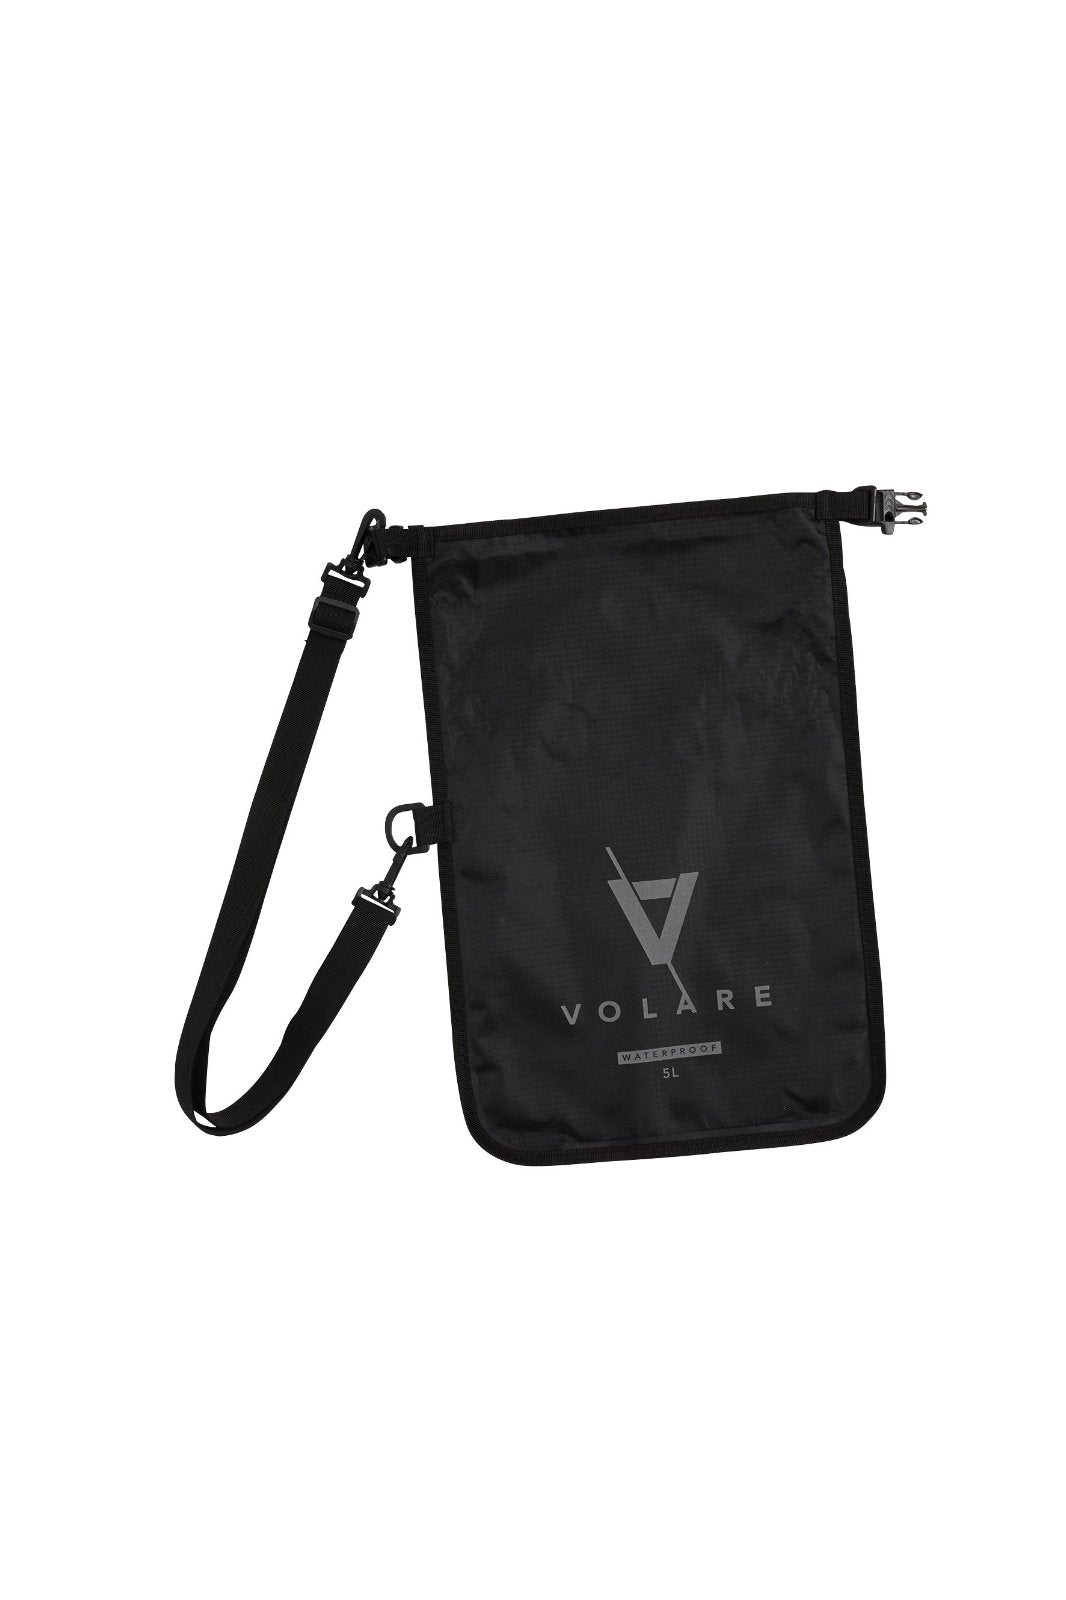 Waterproof Dry Flat Bag - 5L